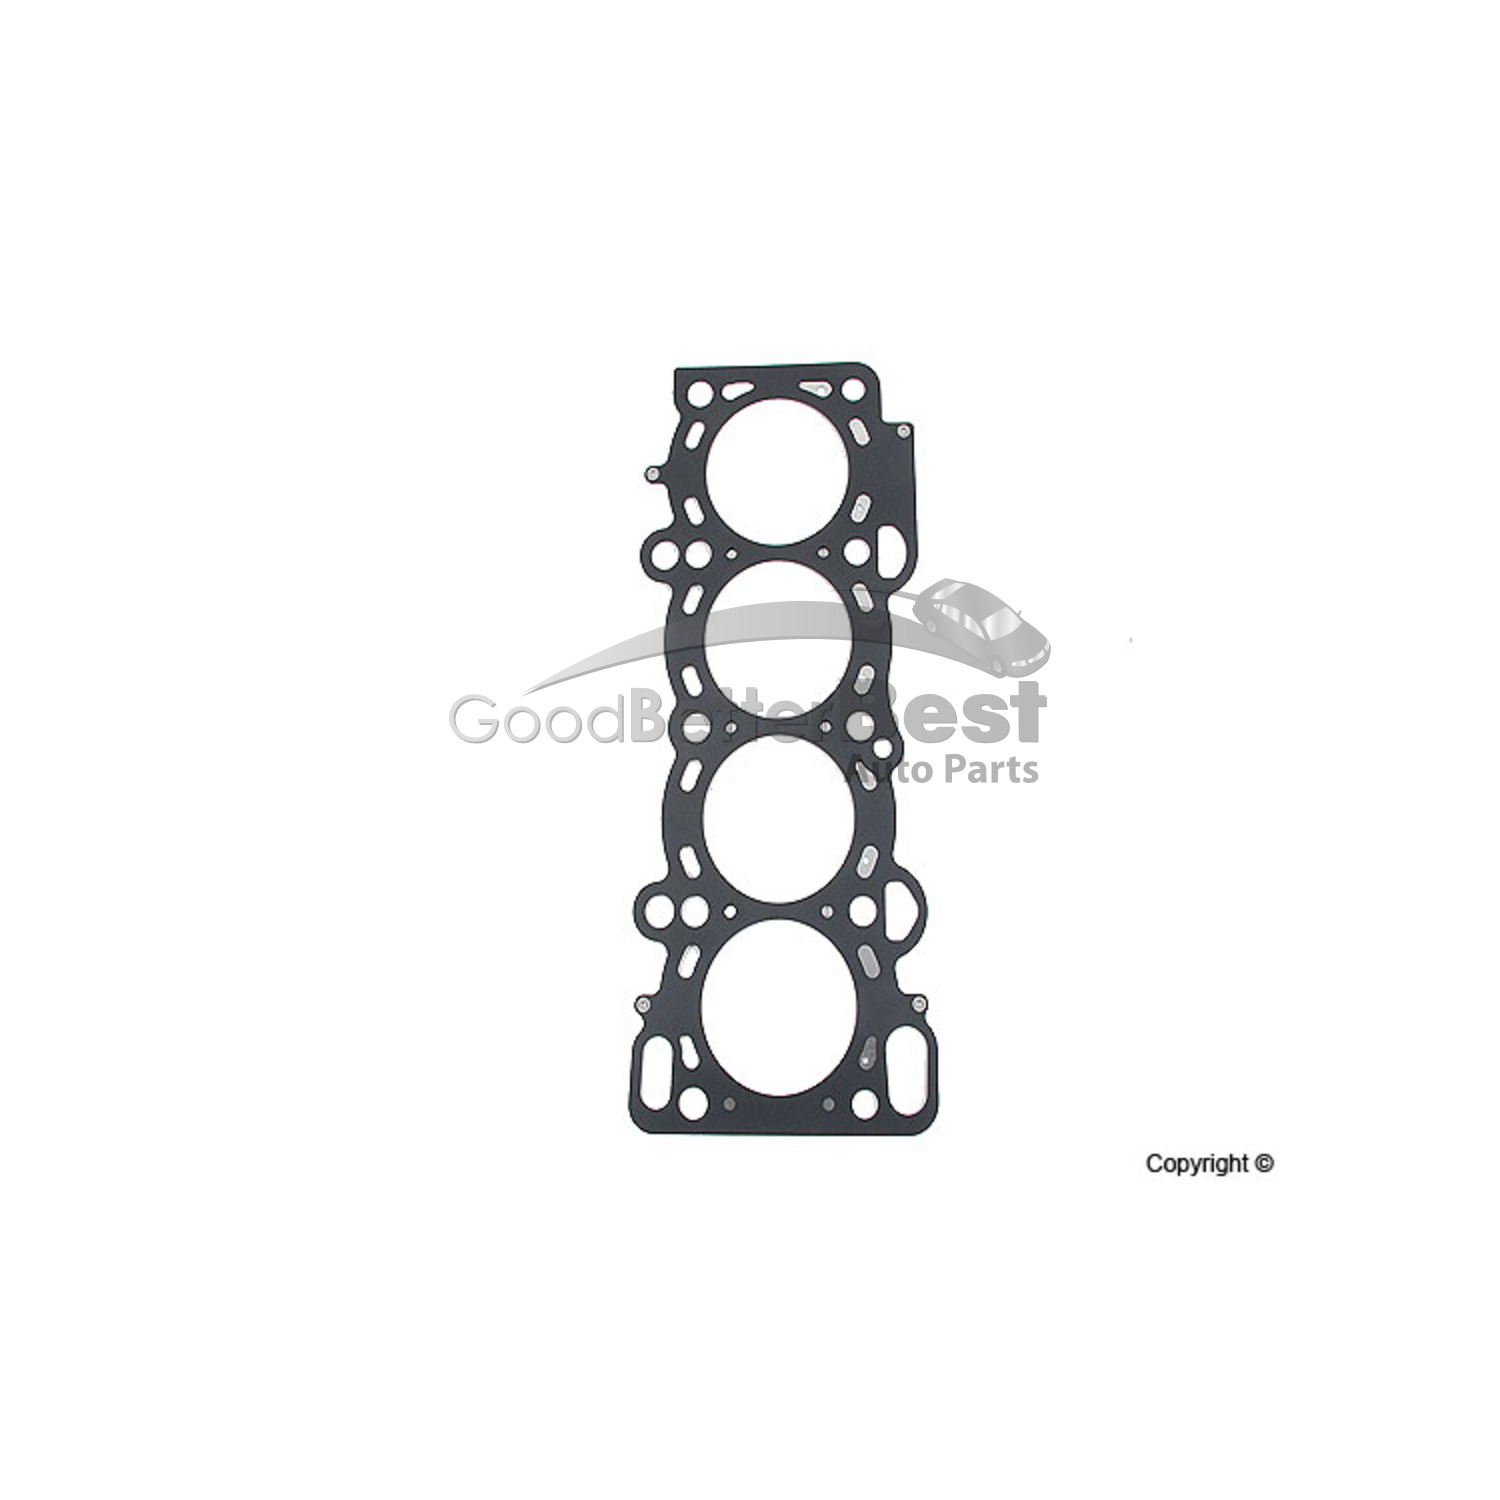 One New Vict Rhee Jin Engine Cylinder Head Gasket